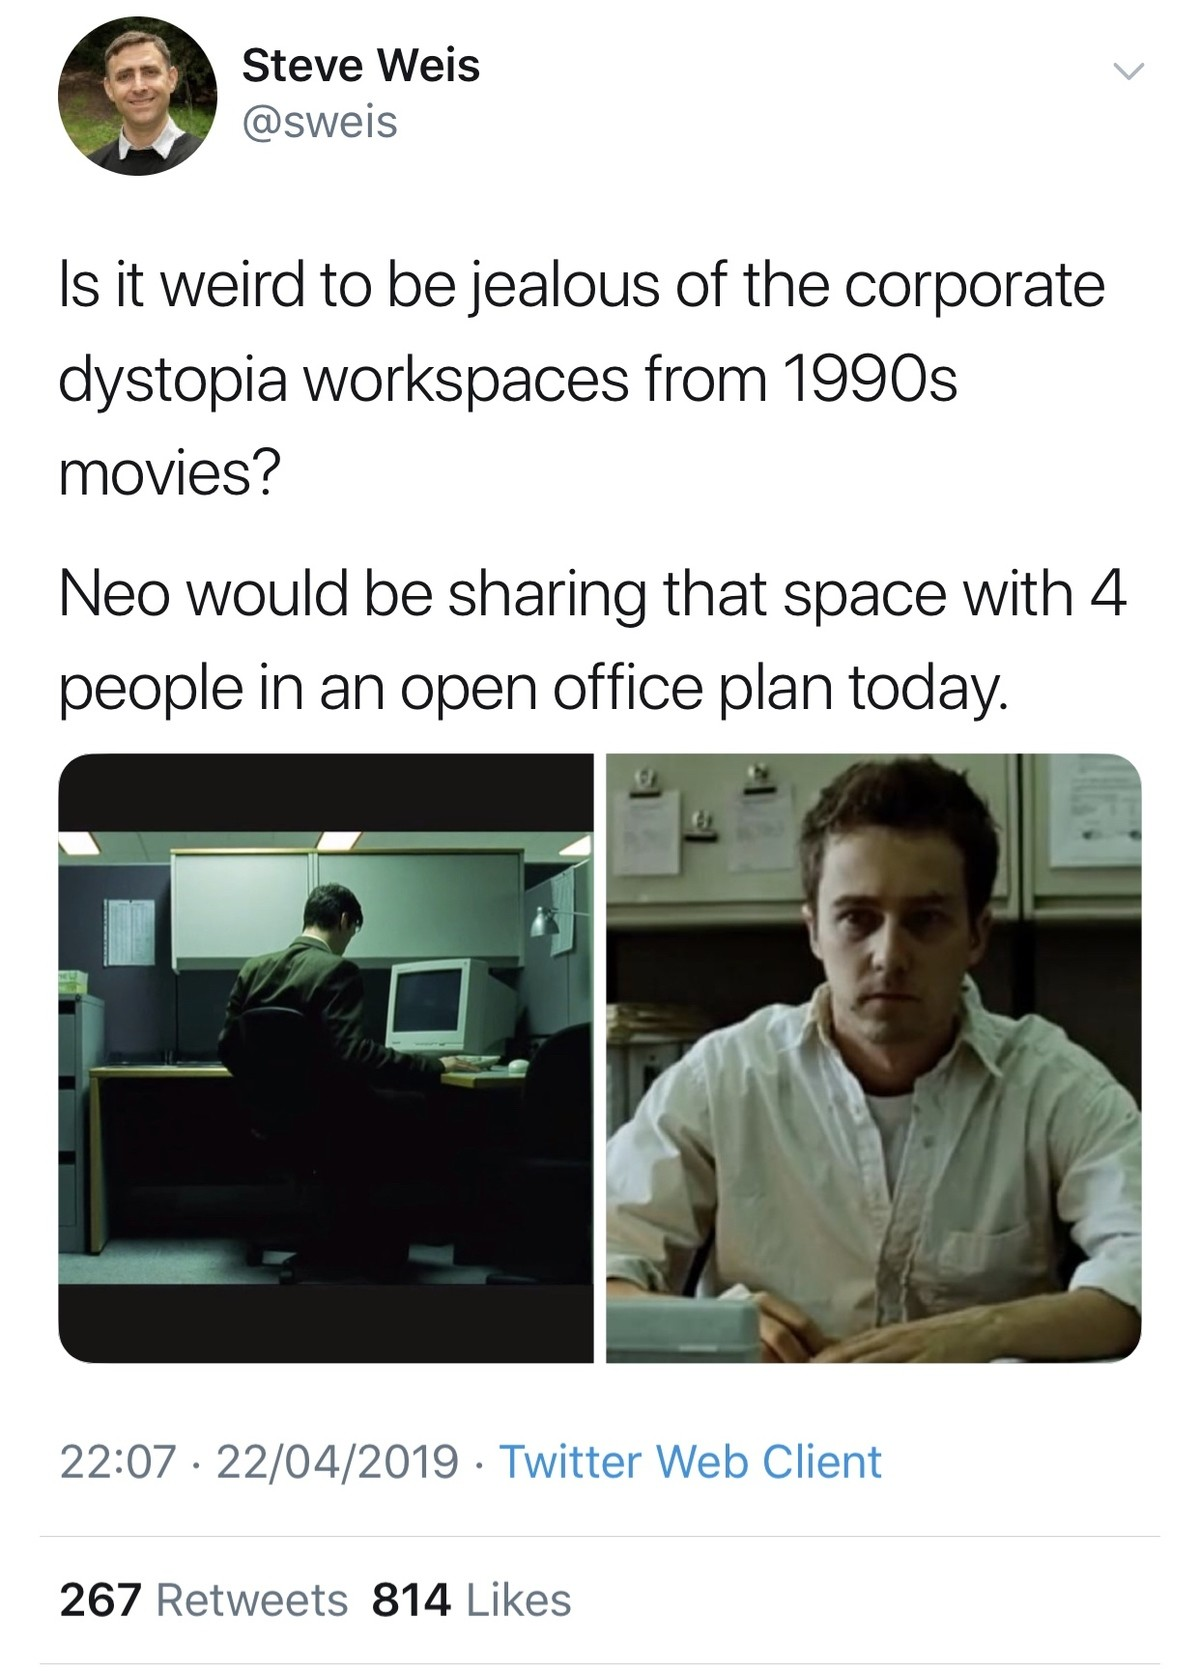 weird. .. I work in an open office layout, it's not too bad when the people around you are really cool. Everyone is pretty quiet and respectful too.